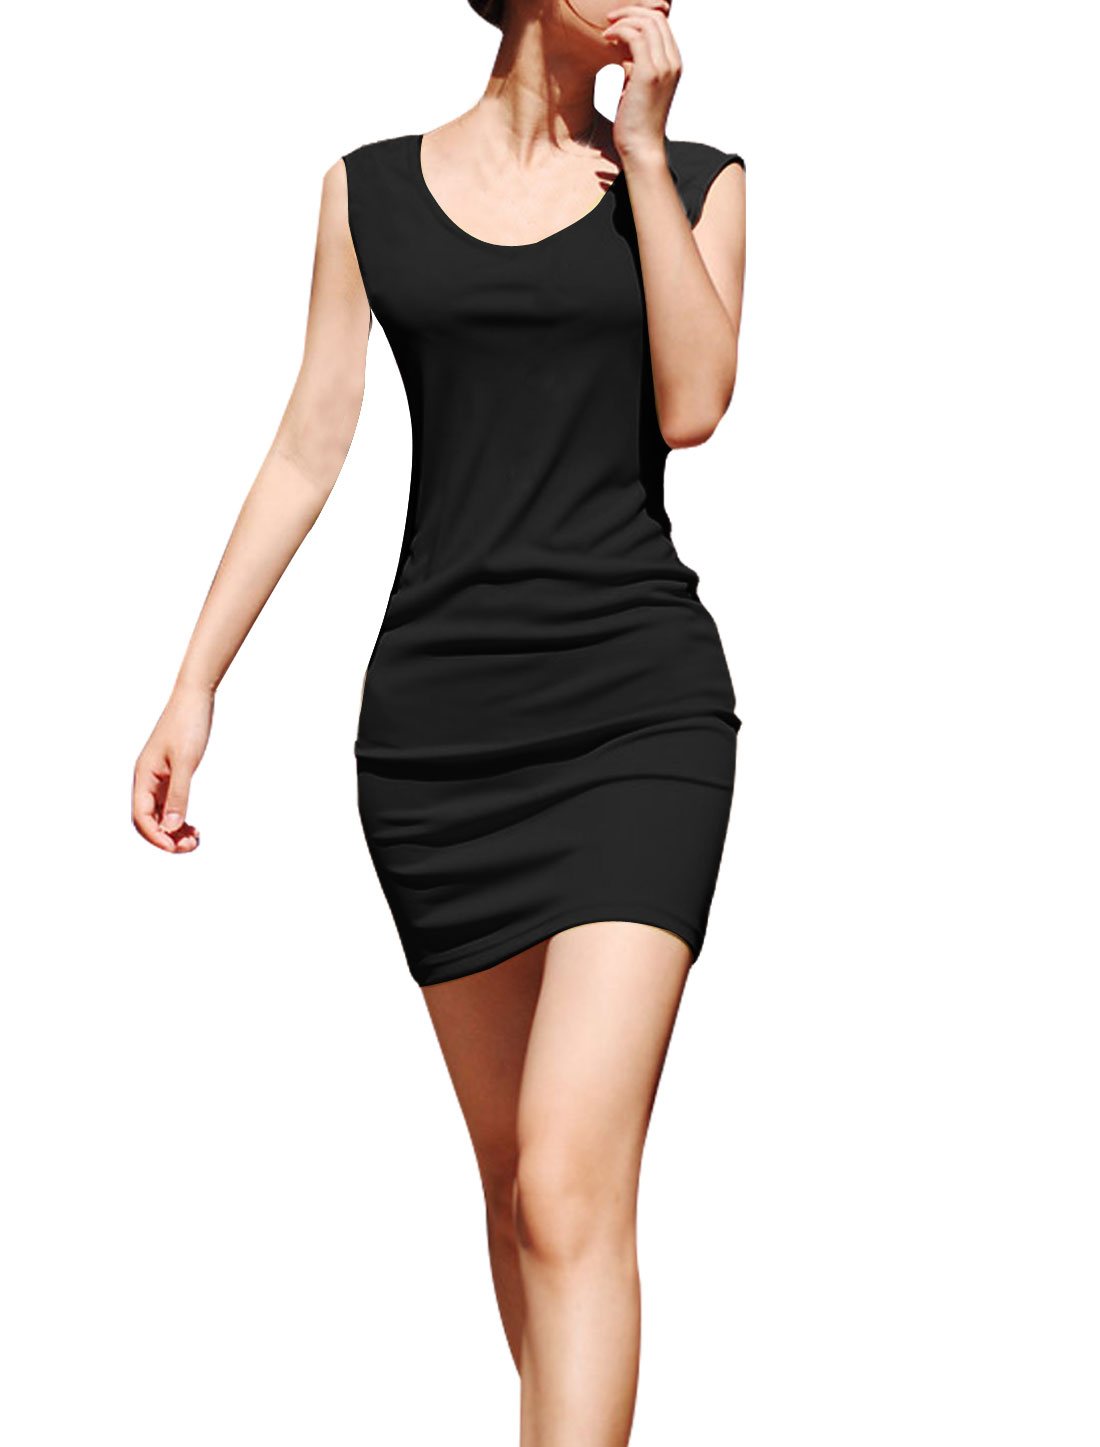 Solid Black Stretchy Hip-Hugging Mini Dress M for Women